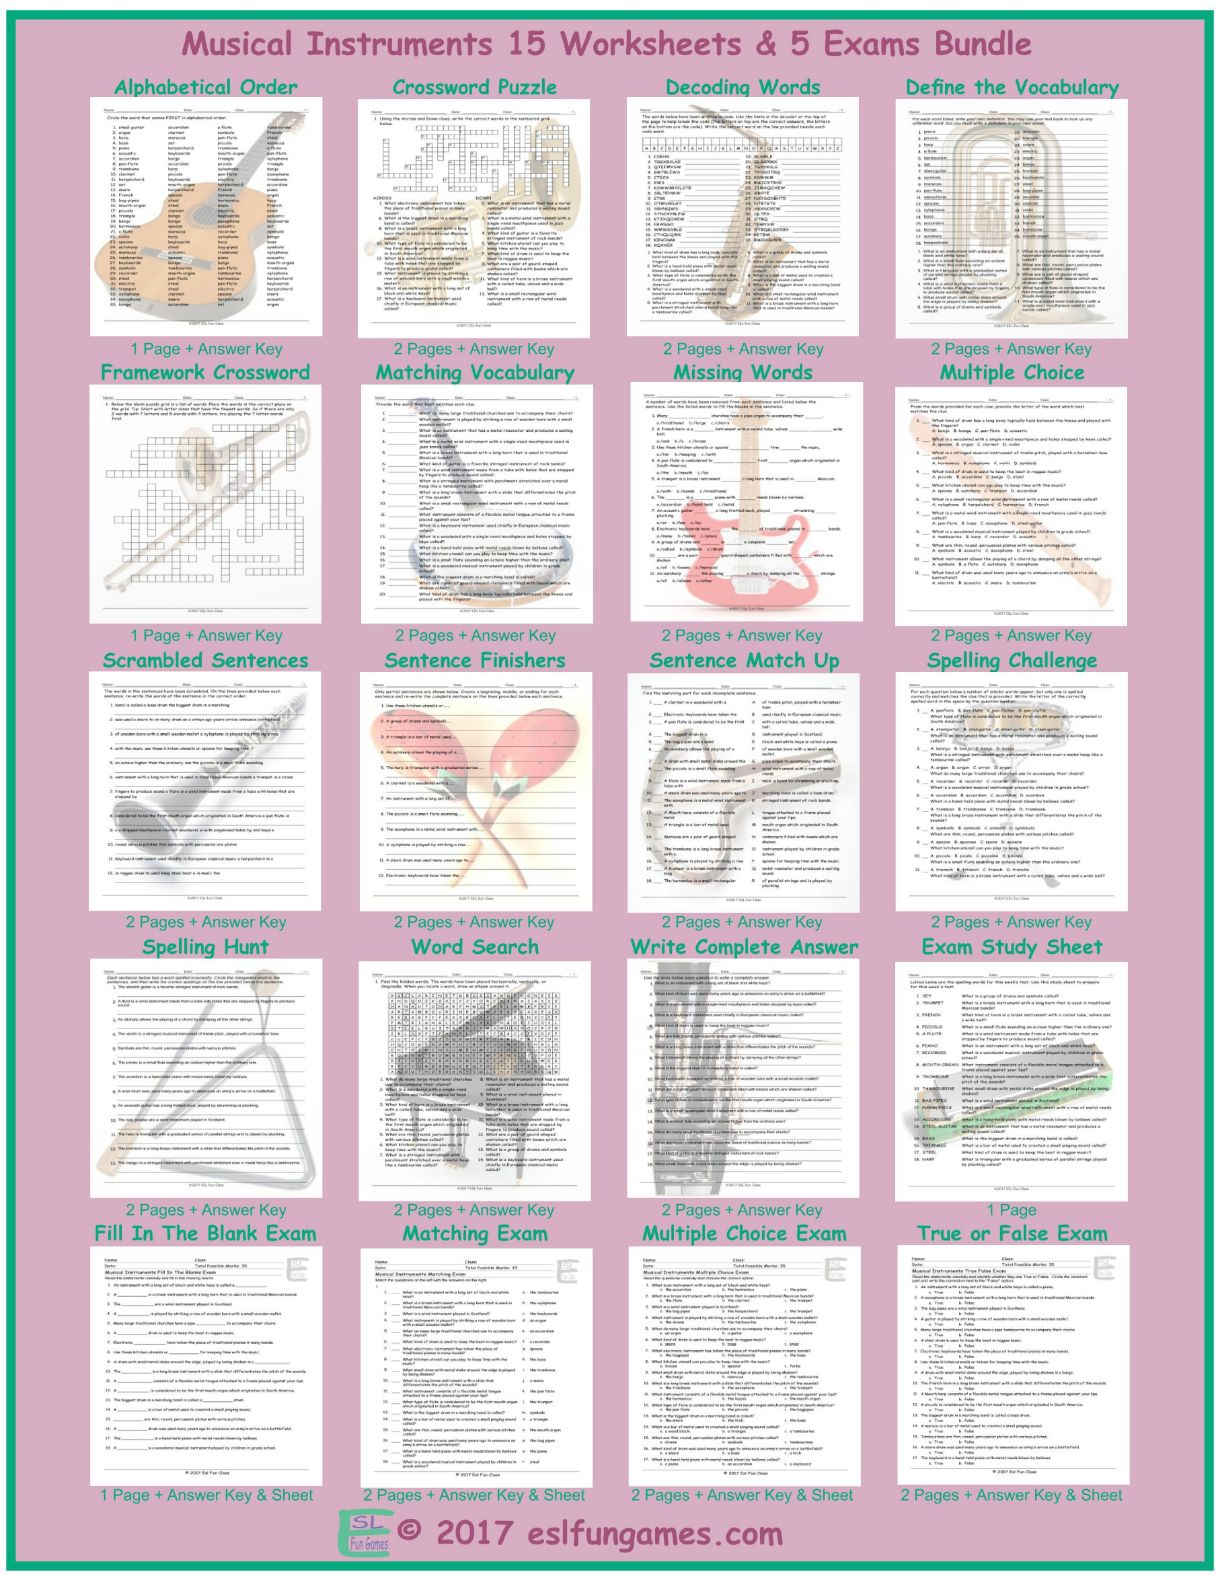 Workbooks understatement worksheets : Musical Instruments Sentence Match Up Worksheet by eslfungames ...